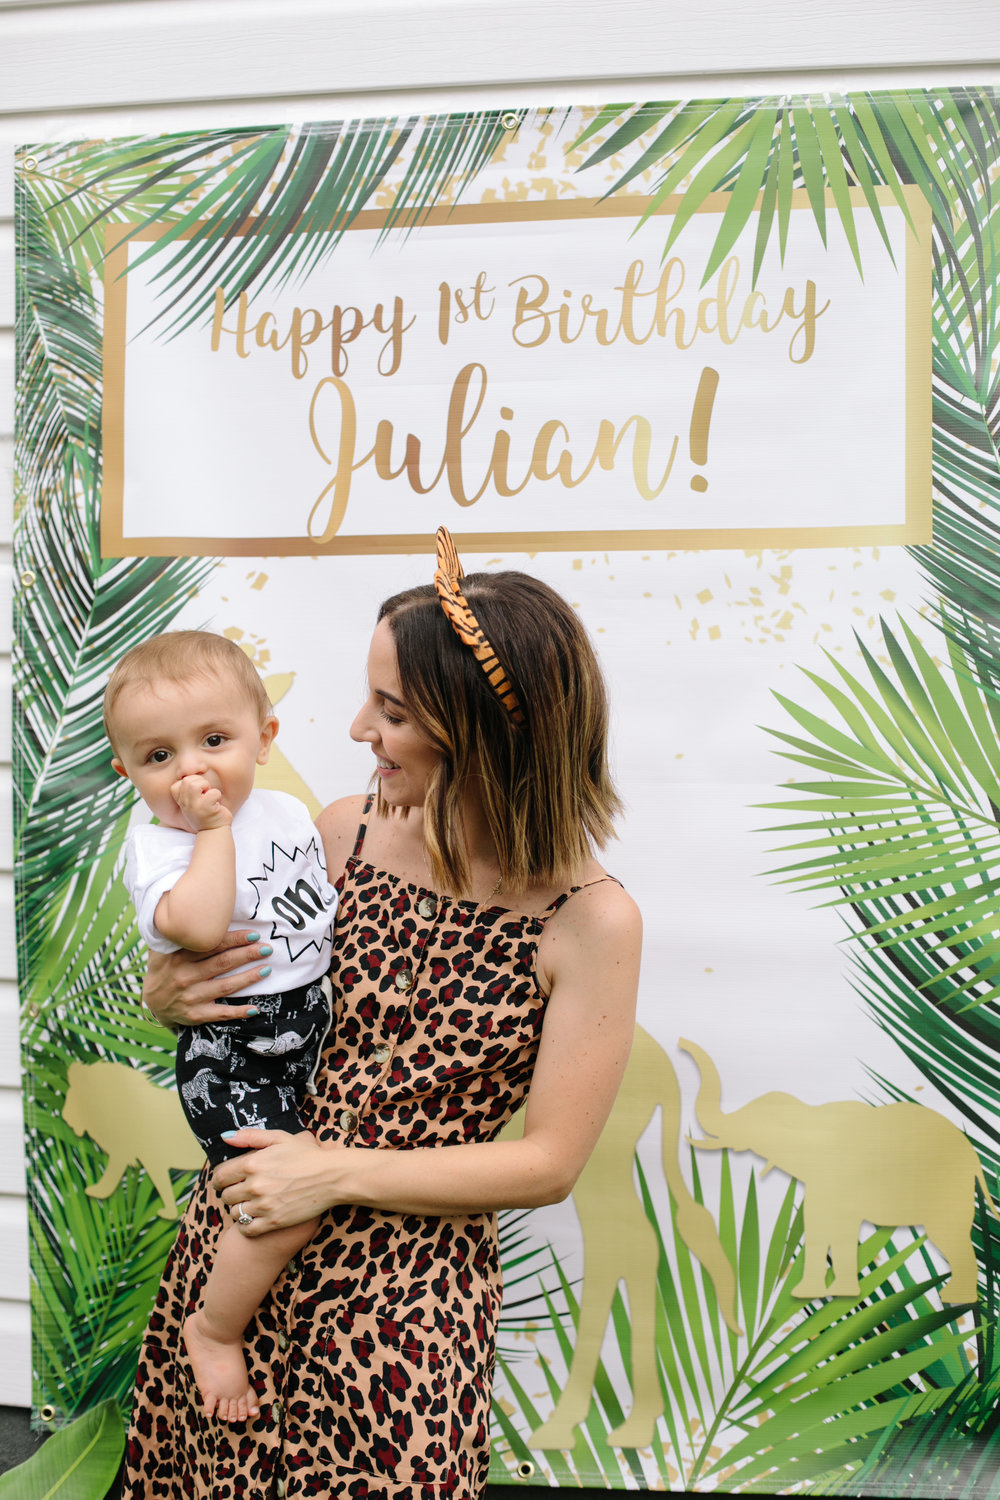 AngelaDatreEvents_JulianFirstBirthday_090118-46.jpg